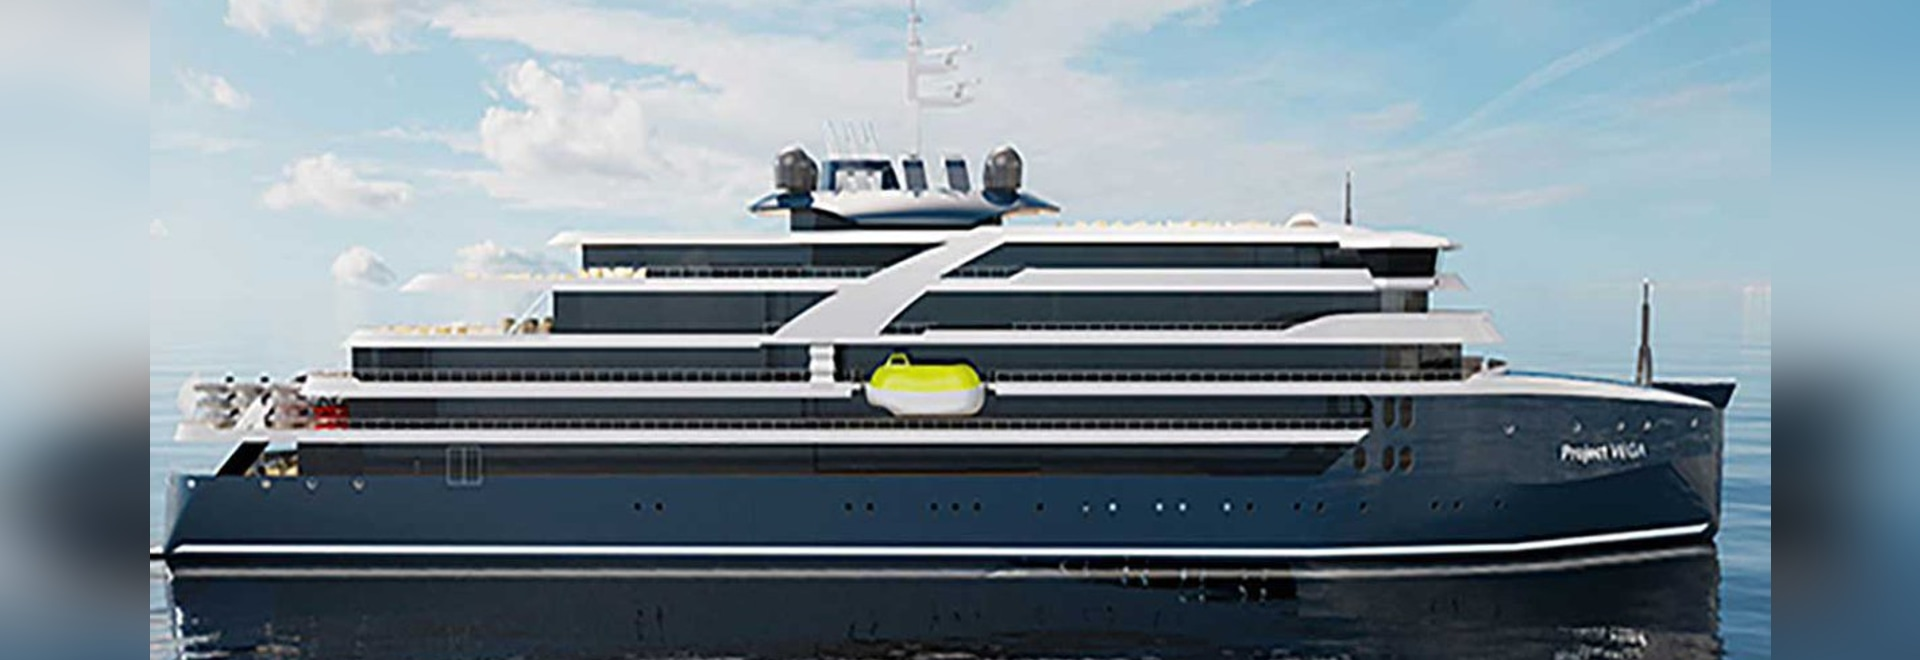 Valmet to Supply Automation for Expedition Cruise Pair